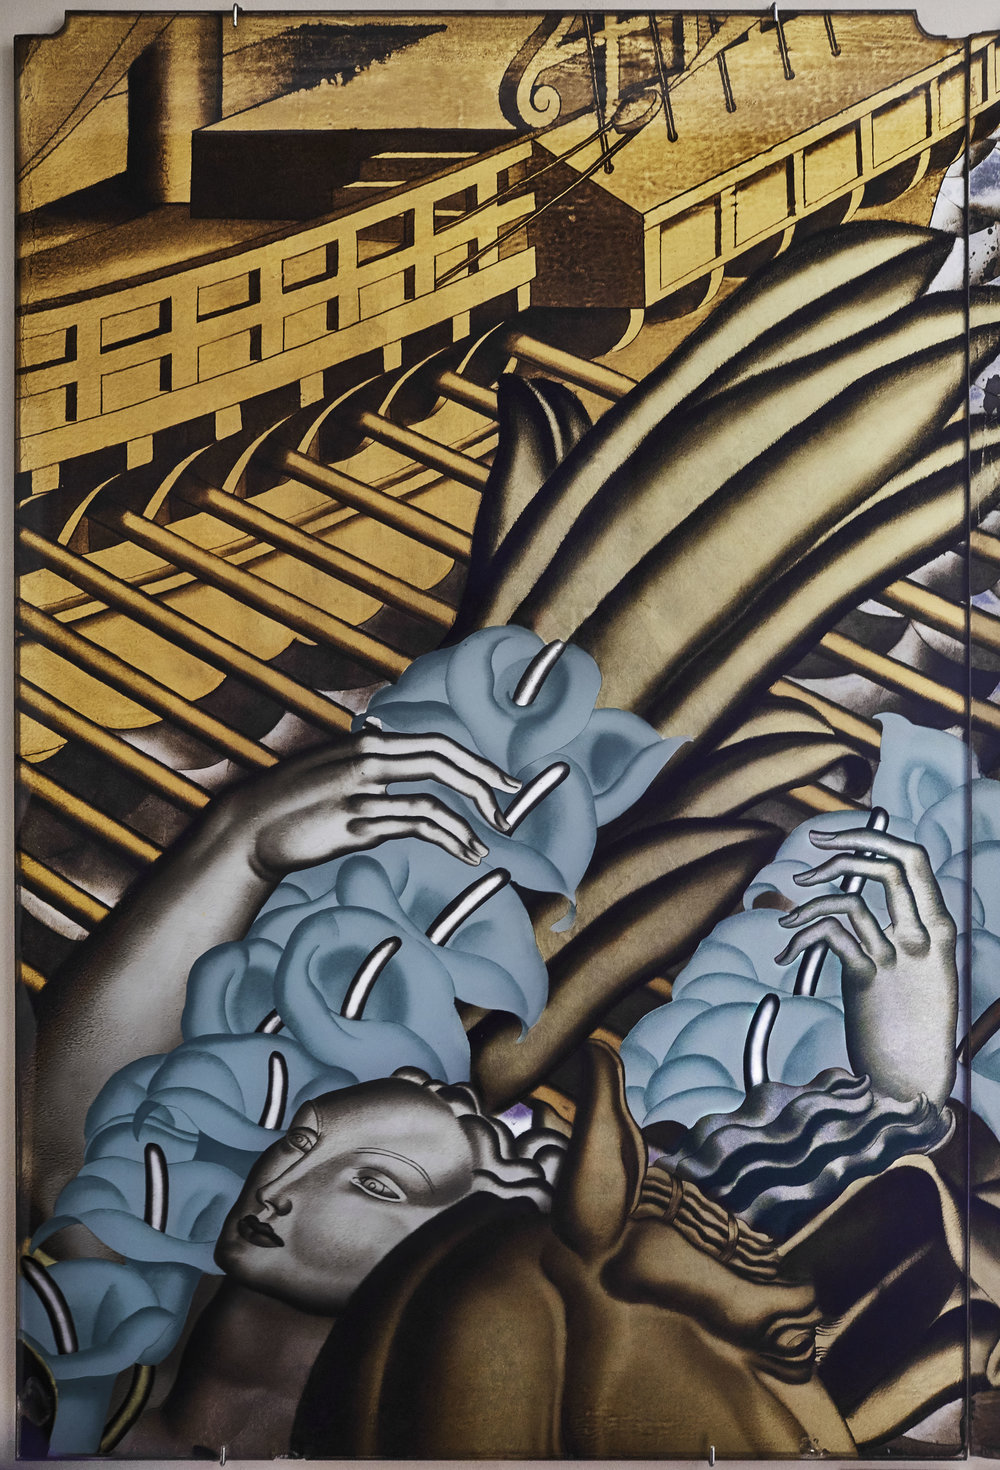 Panel from The Rape of Europa for the first-class grand salon on-board Normandie, Jean Dupas, France, 1934 © Miottel Museum. Photograph courtesy of Peabody Essex Museum, Salem, Massachusetts